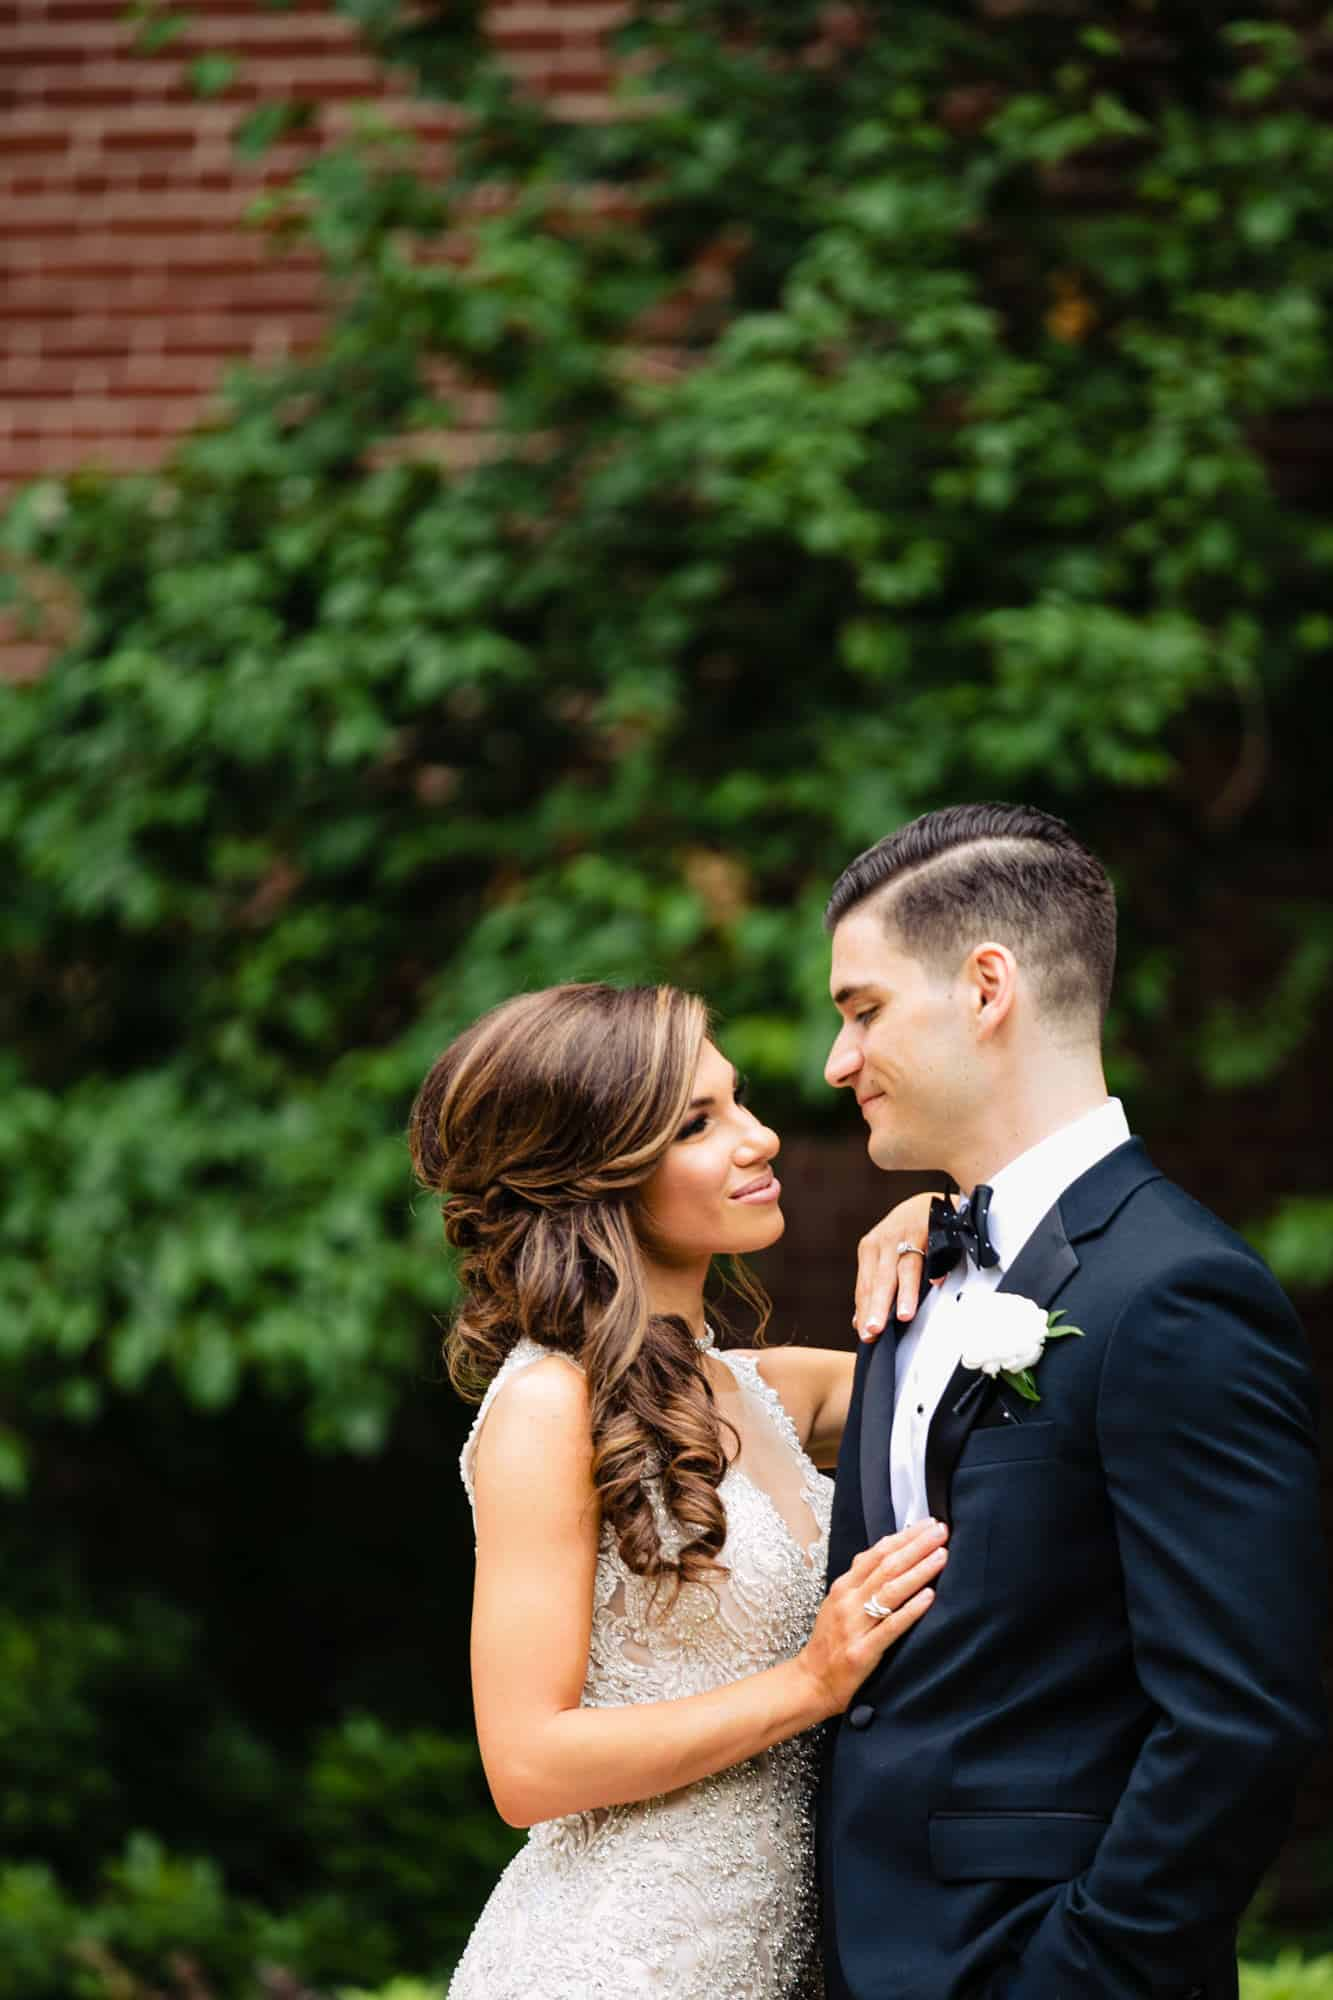 Gabriella+Nick-Tendenza Wedding-22